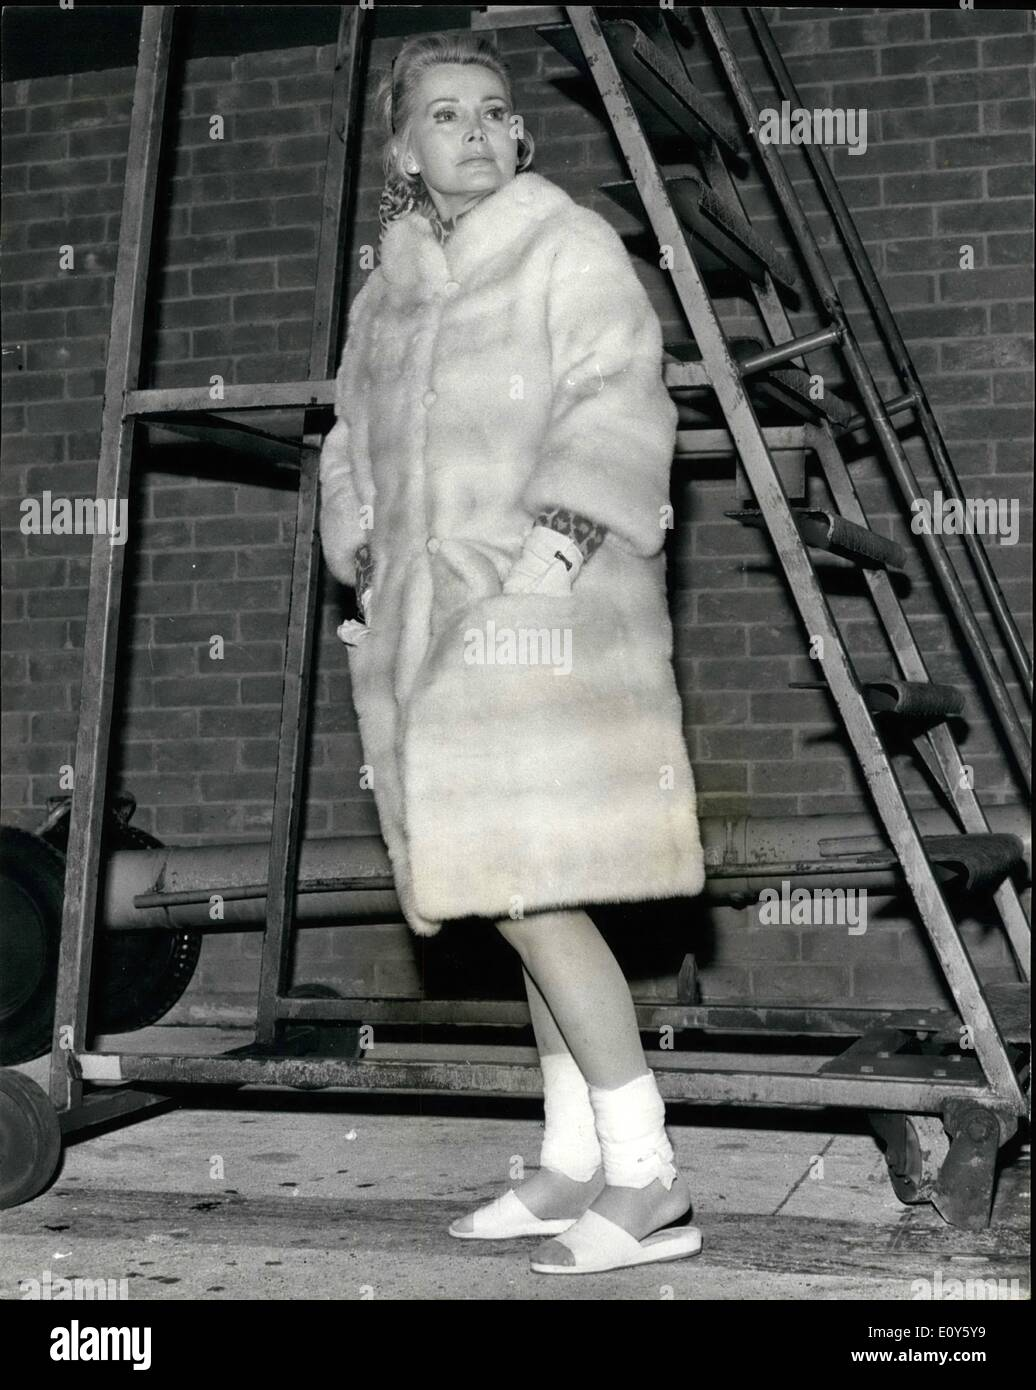 Nov. 21, 1968 - November 21st, 1968 Zsa Zsa Gabor arrives. Actress Zsa Zsa Gabor arrived at Heathrow Airport from Palma, Majorca, last night with her legs and wrists bandaged. She alleged that Spanish police had beaten her when they removed her from a Paris-bound aircraft at Palma, where she was charged with refusing to pay hotel bills and insulting the authorities. At Heathrow last night she refused to board the airline coach and sat on the aircraft steps until a car took her to the terminal building - Stock Image